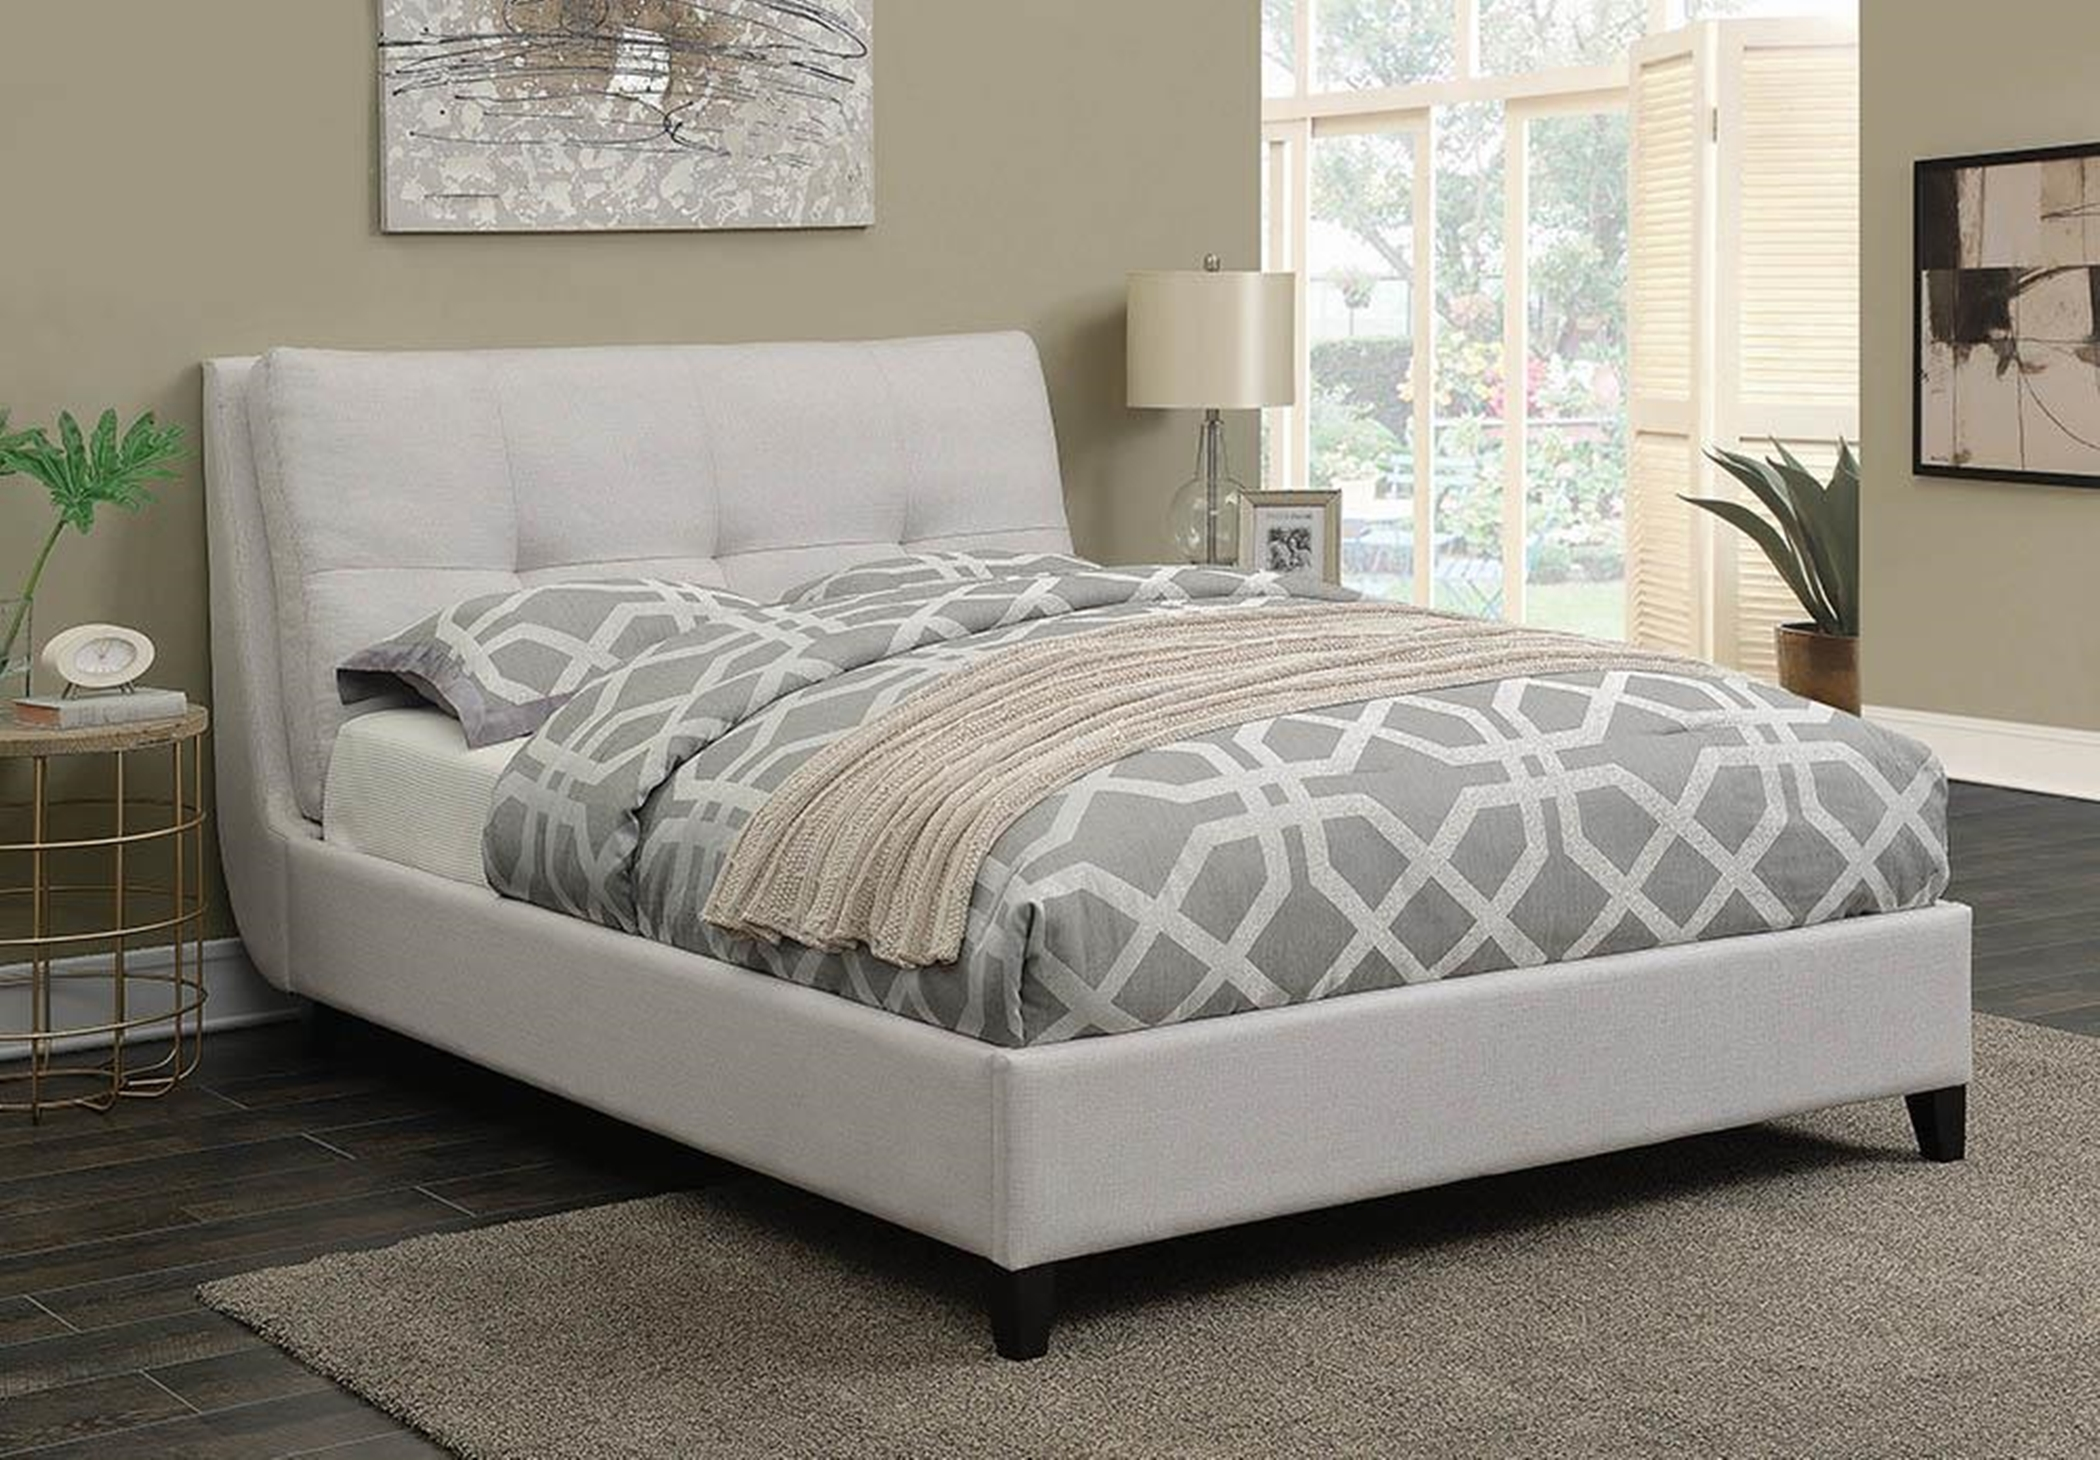 Amador Beige Upholstered Cal. King Platform Bed